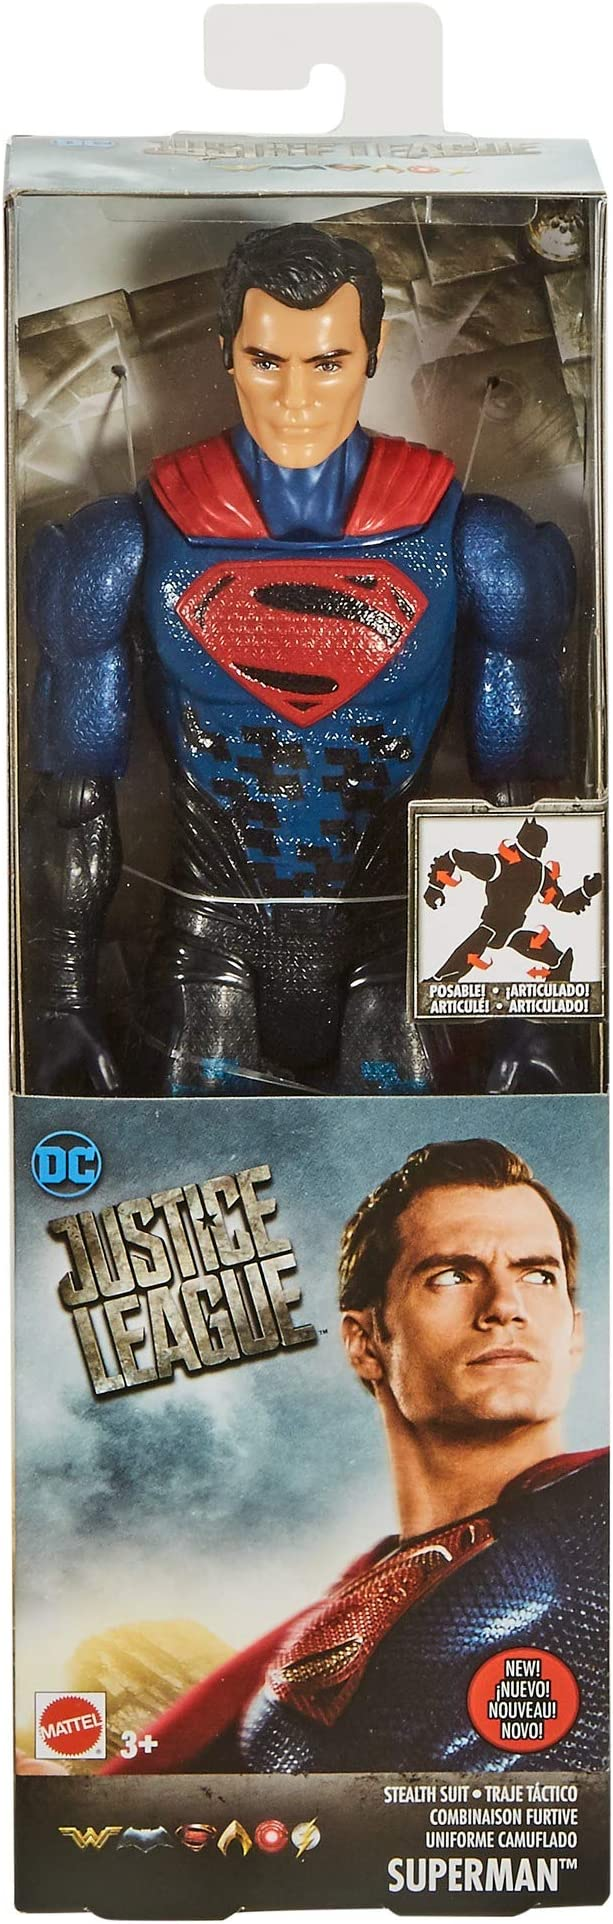 DC Justice League Stealth Suit Superman Figure